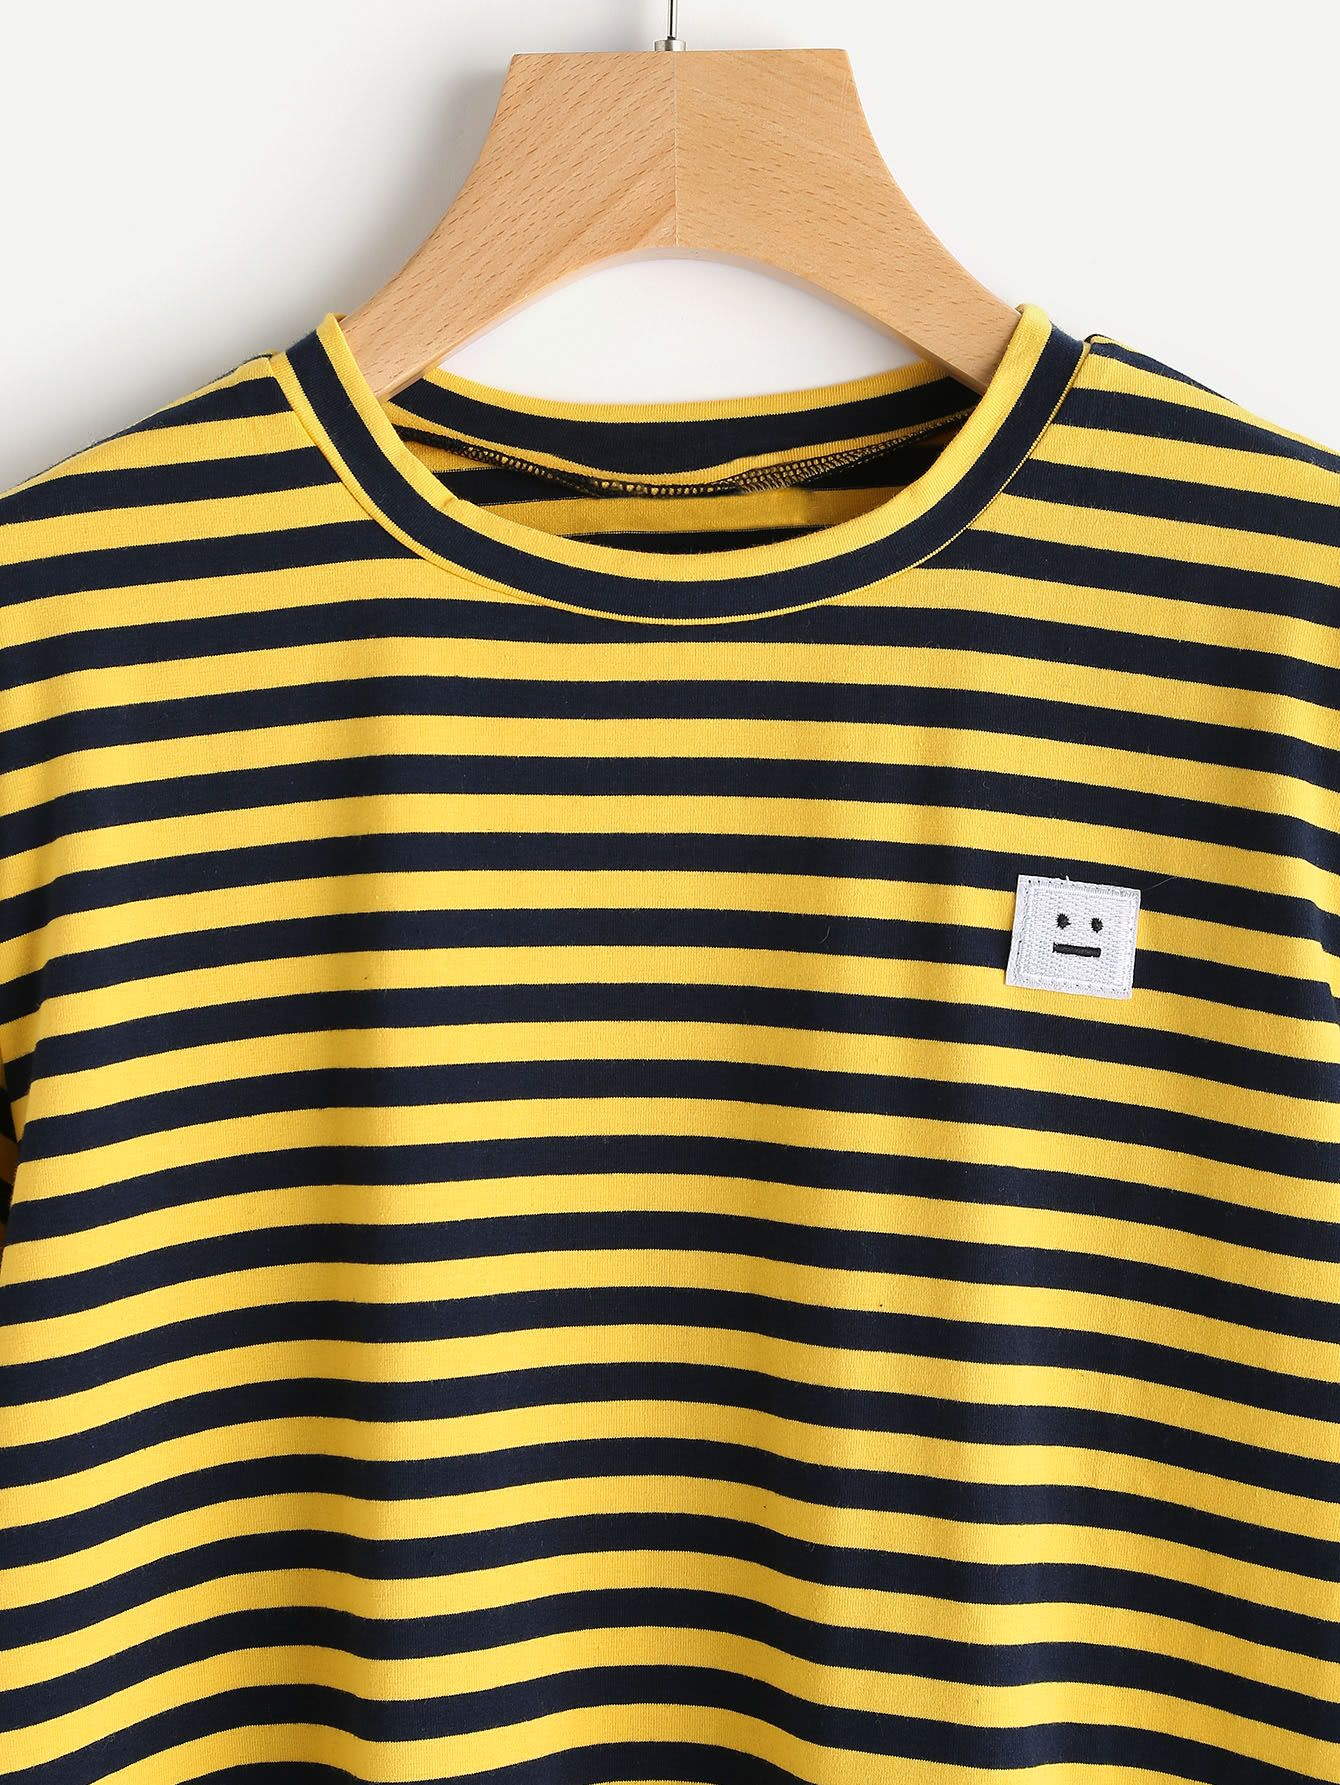 4bb03aeb46 Bee Stripe Emoji Patch Tshirt | Clothing | Patch tshirt, Yellow ...